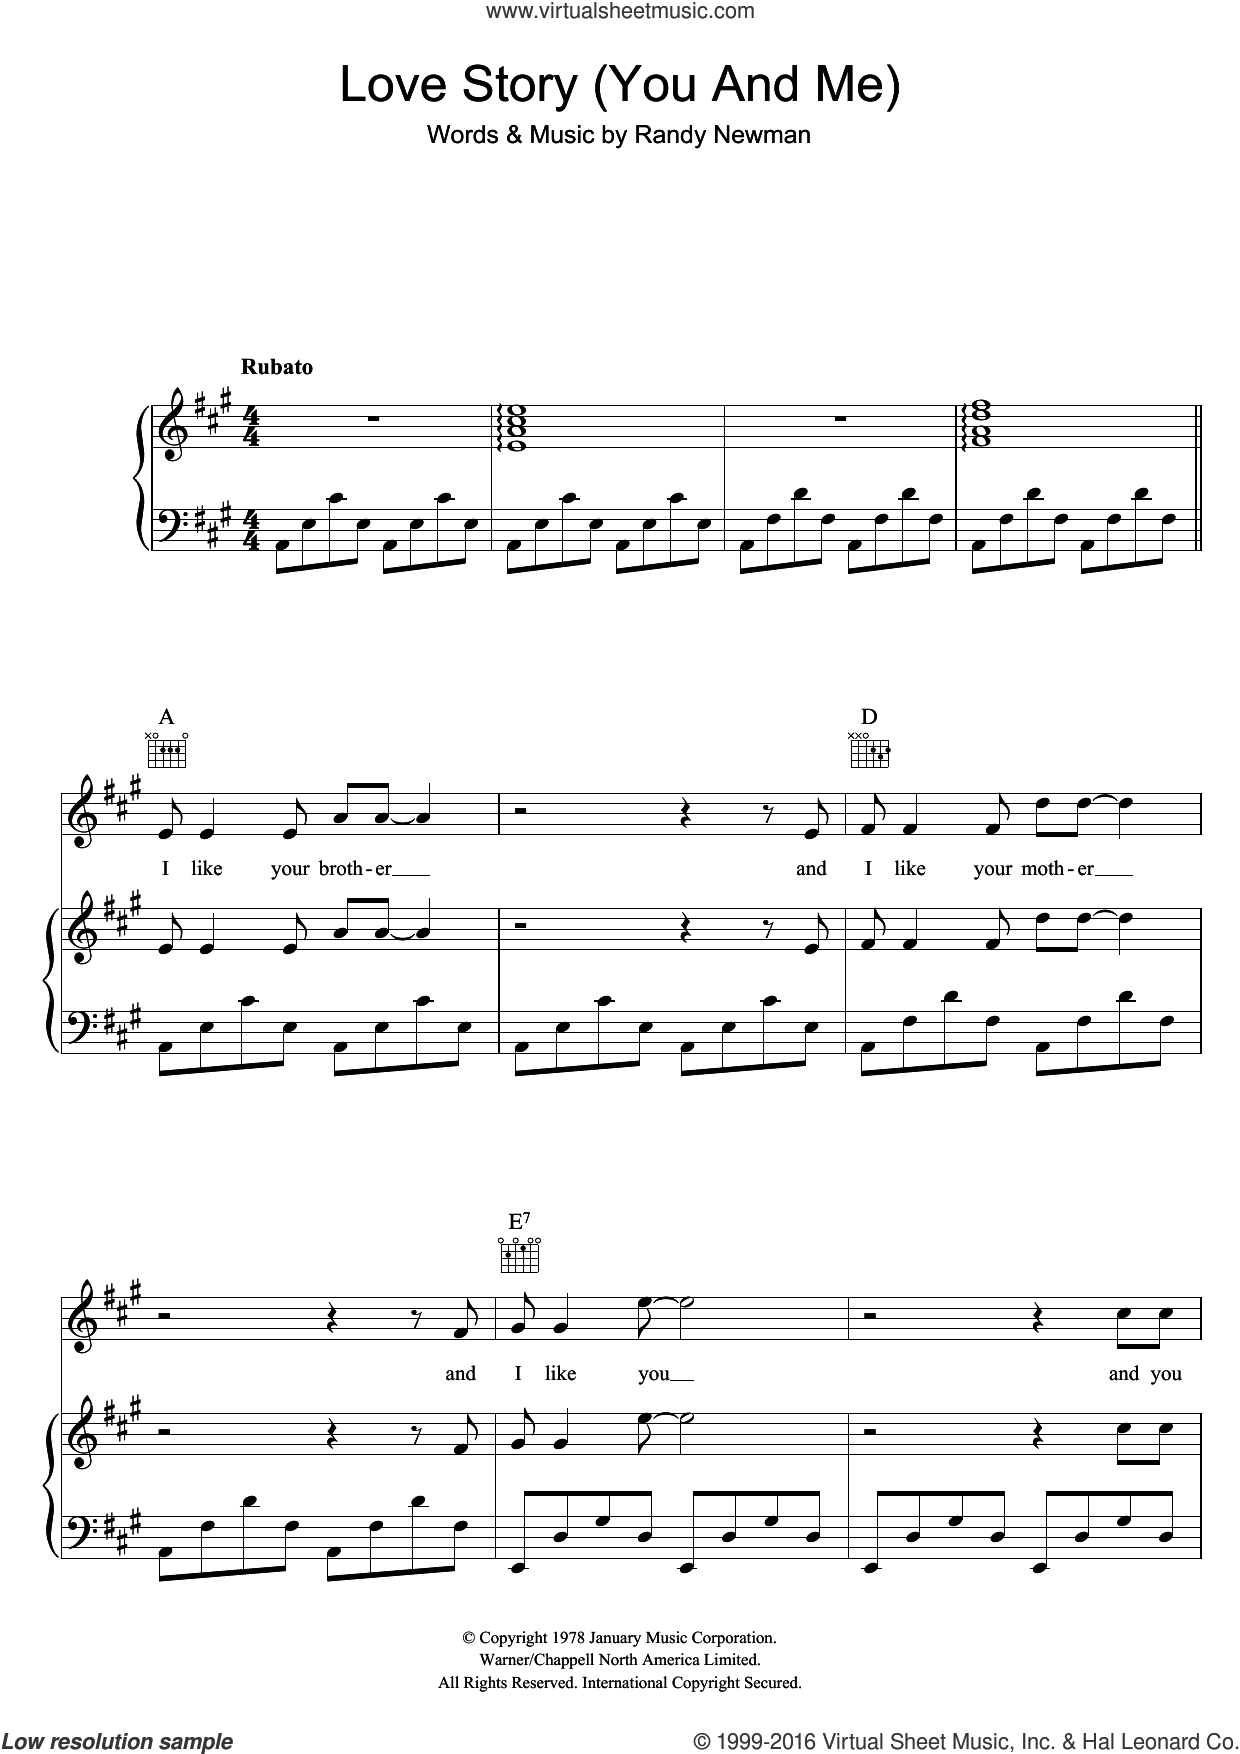 Love Story (You And Me) sheet music for voice, piano or guitar by Randy Newman. Score Image Preview.